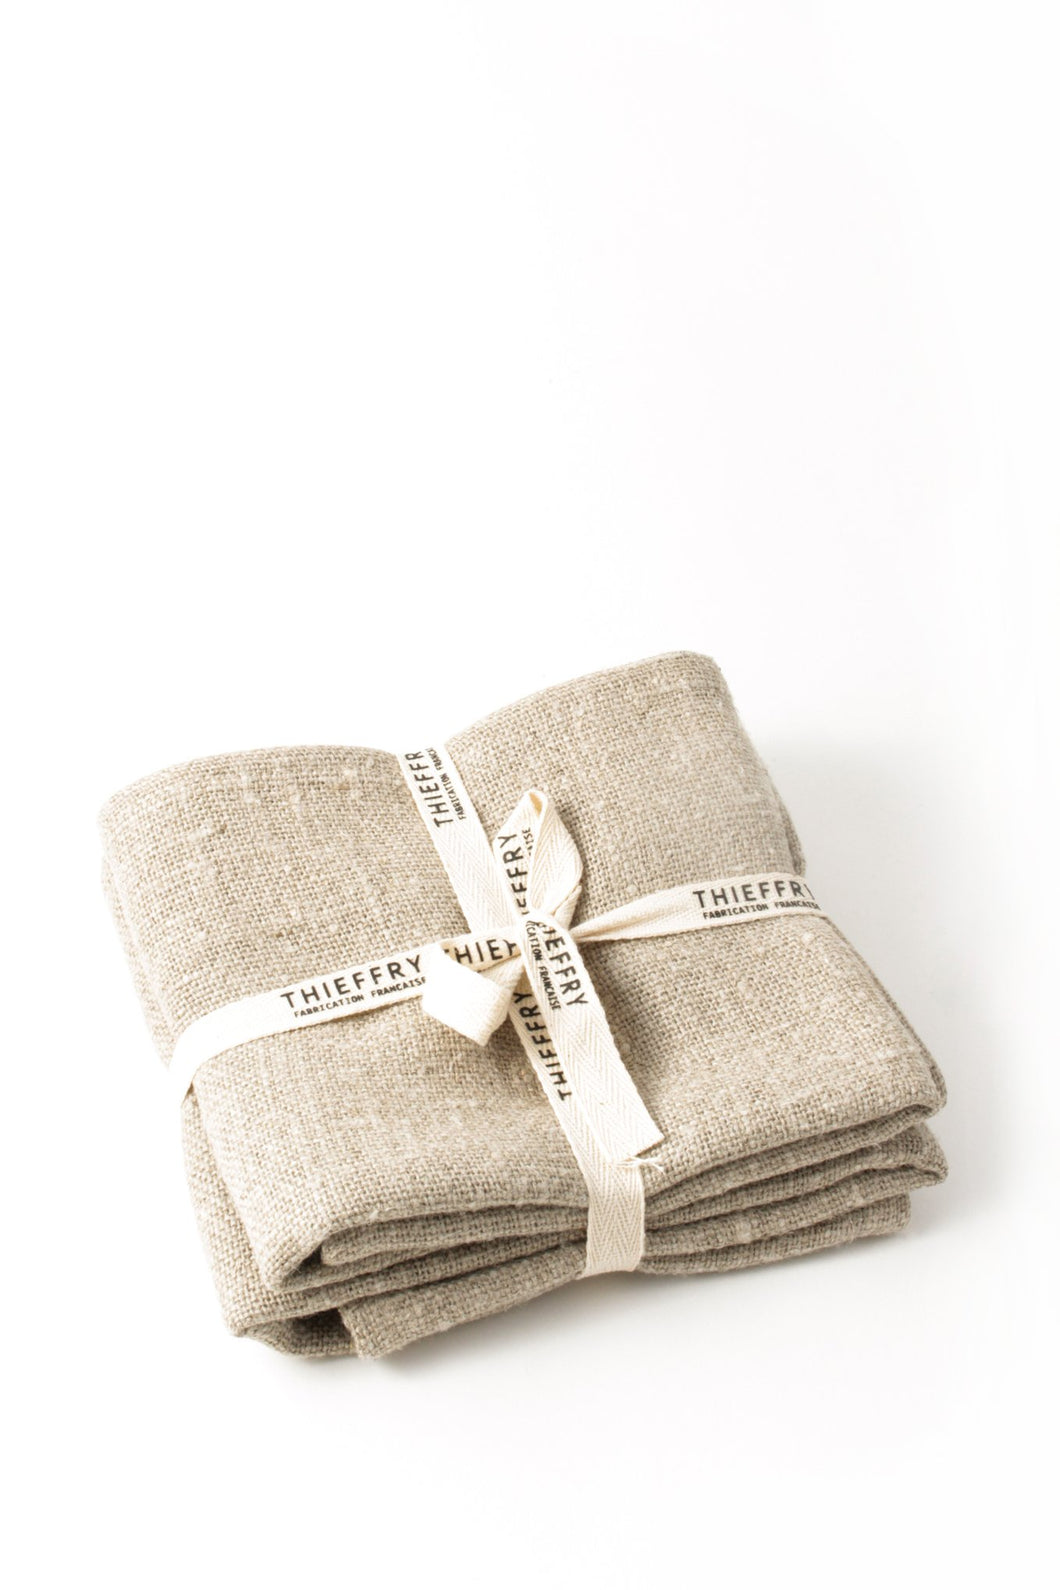 Thieffry Set of Two Dish Towels Raw & Natural (57x70 cm)